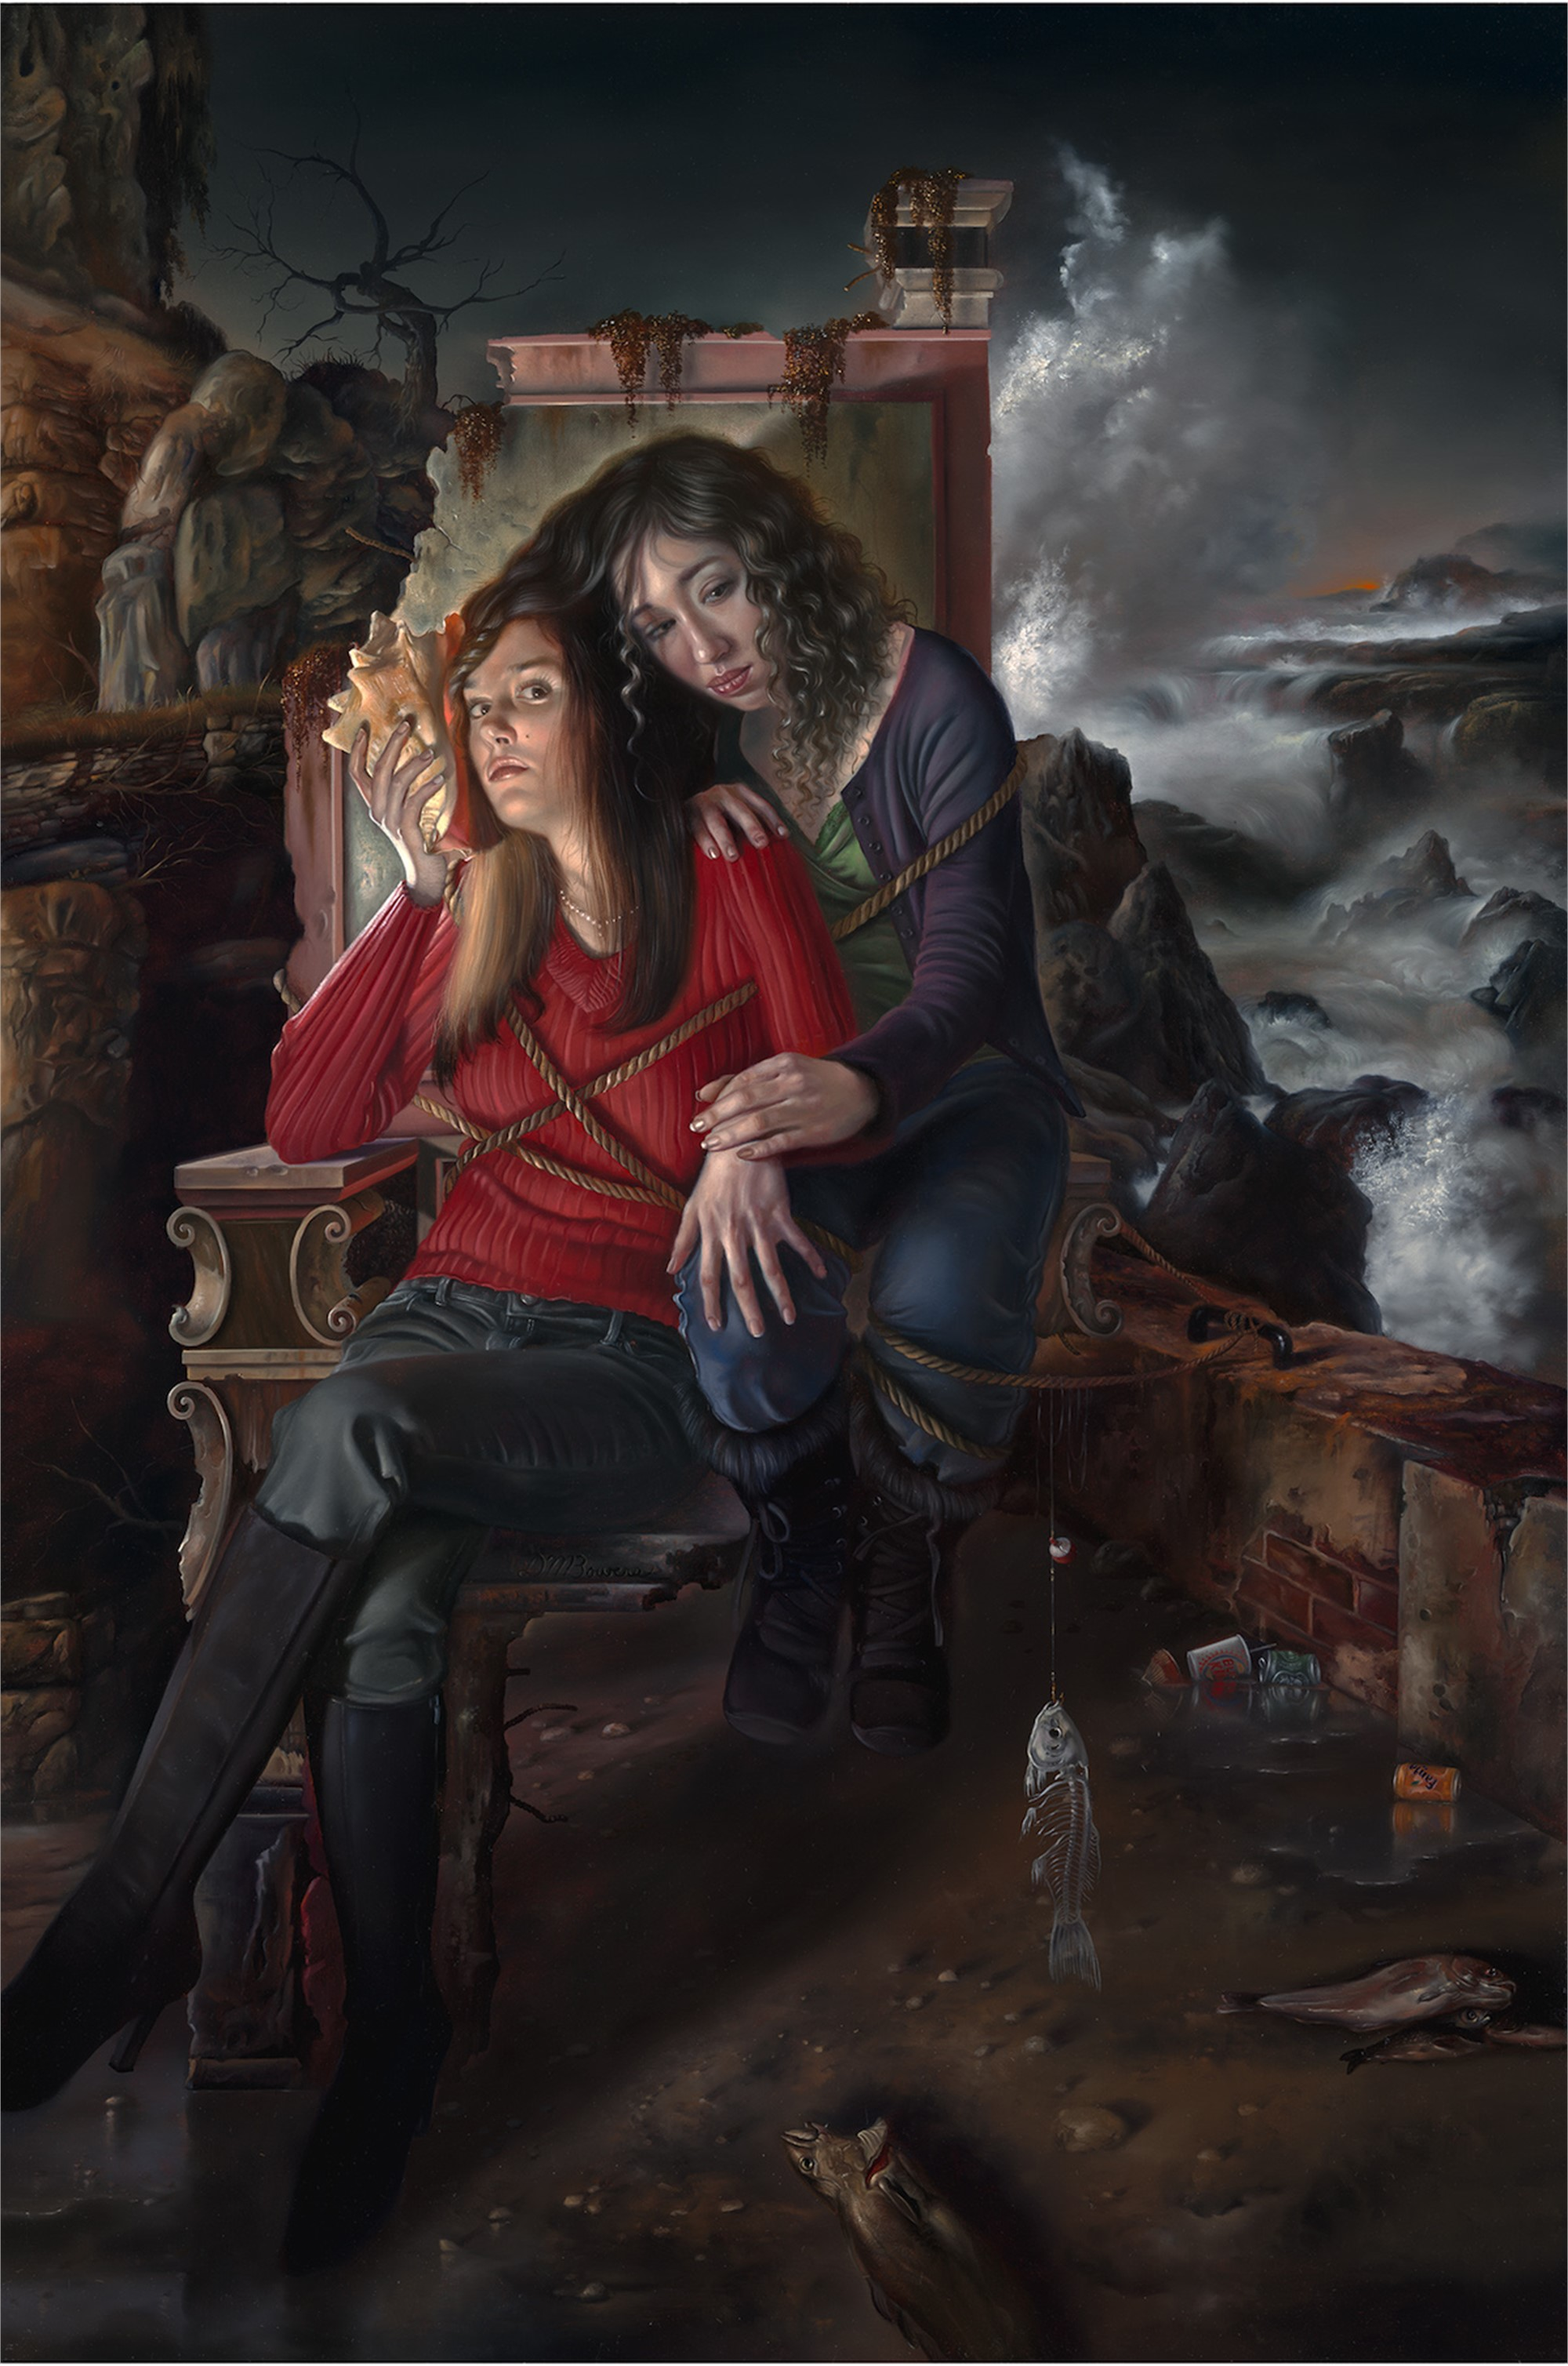 It's Coming by David Michael Bowers